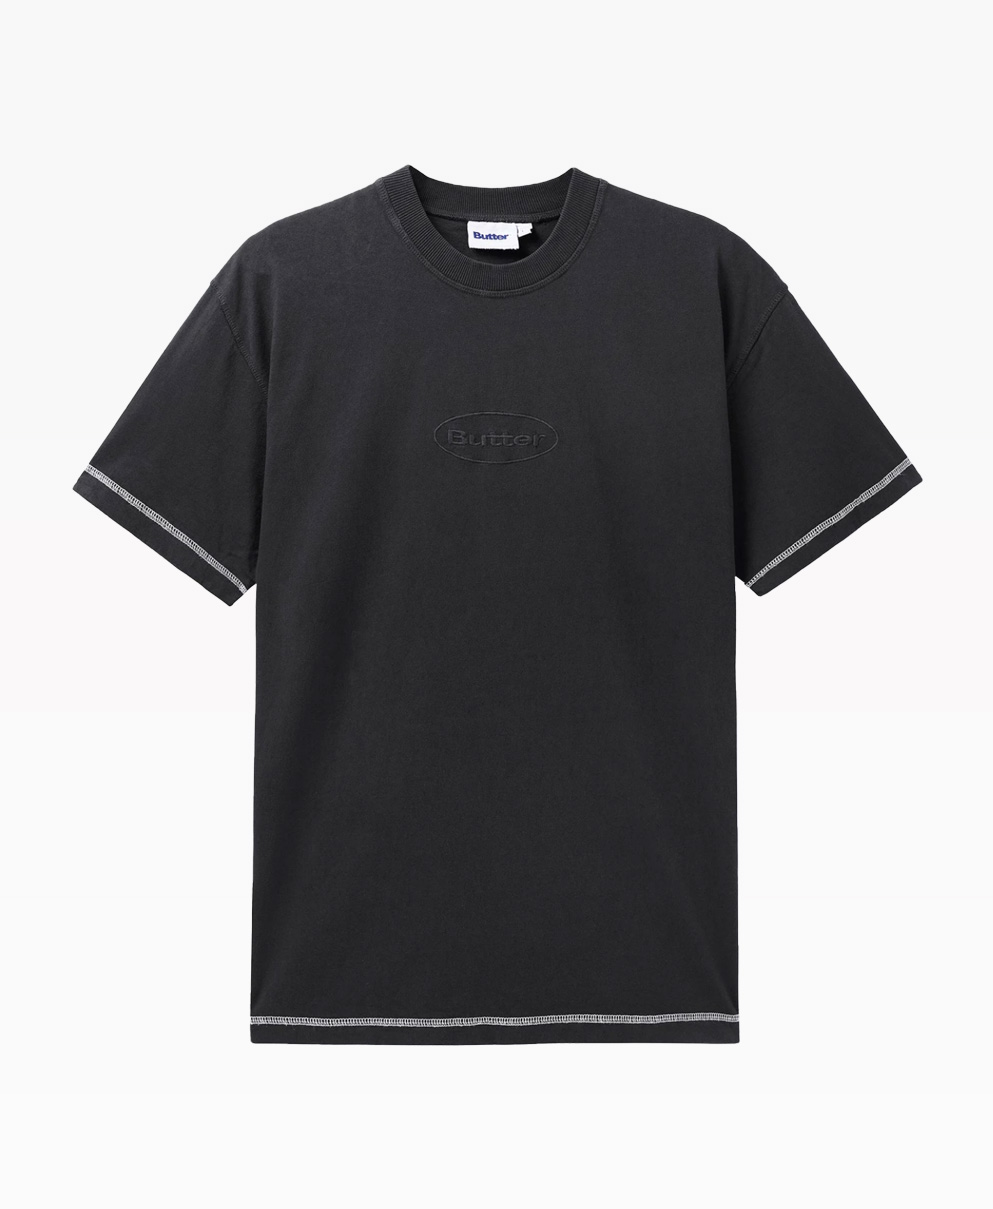 Butter Goods Chain Stitch Black Tee Front